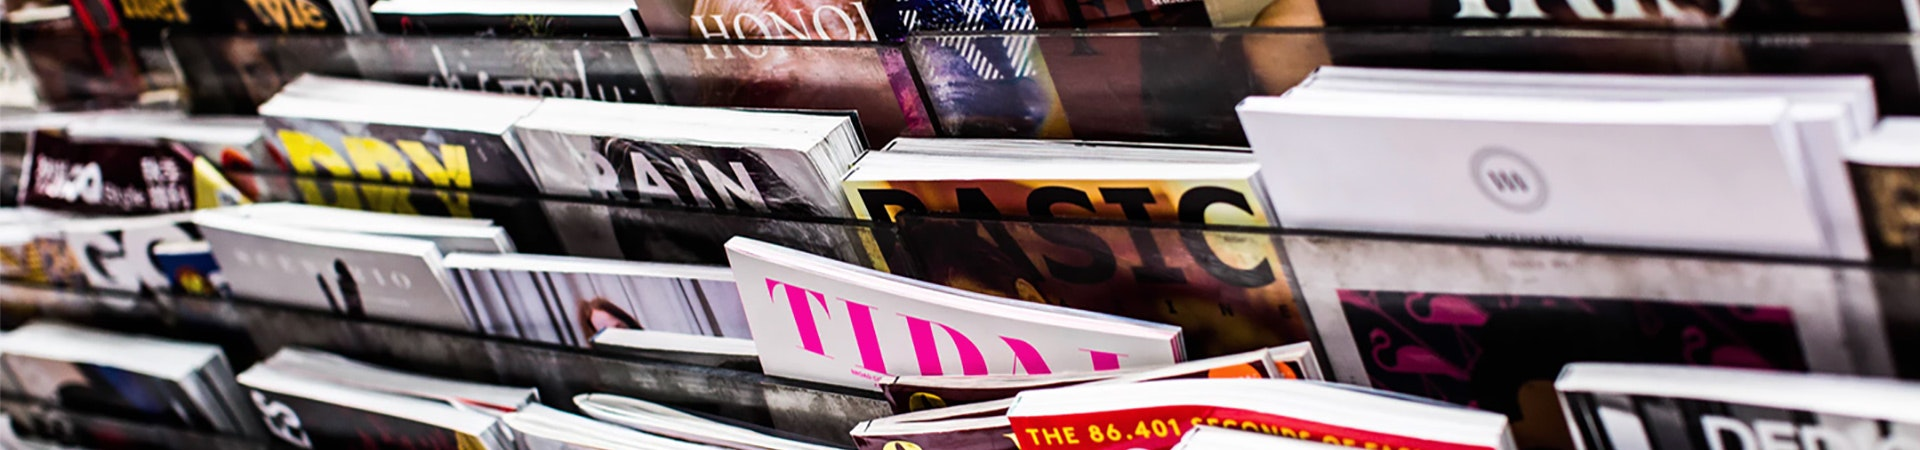 Subscriptions & Magazines